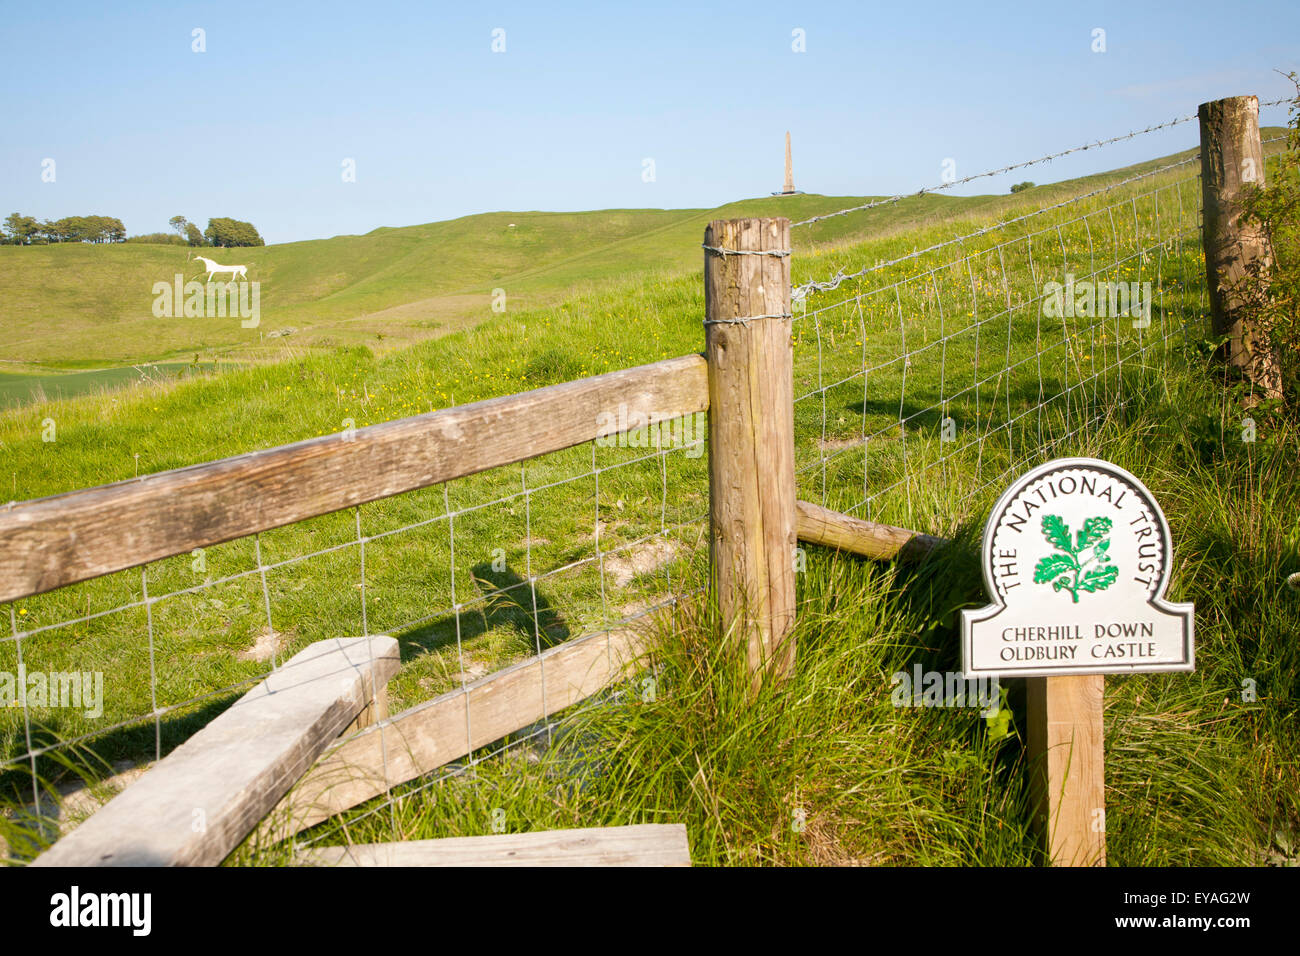 National Trust sign Cherhill Down and Oldbury Castle with Lansdowne monument, Cherhill, Wiltshire, England, UK Stock Photo